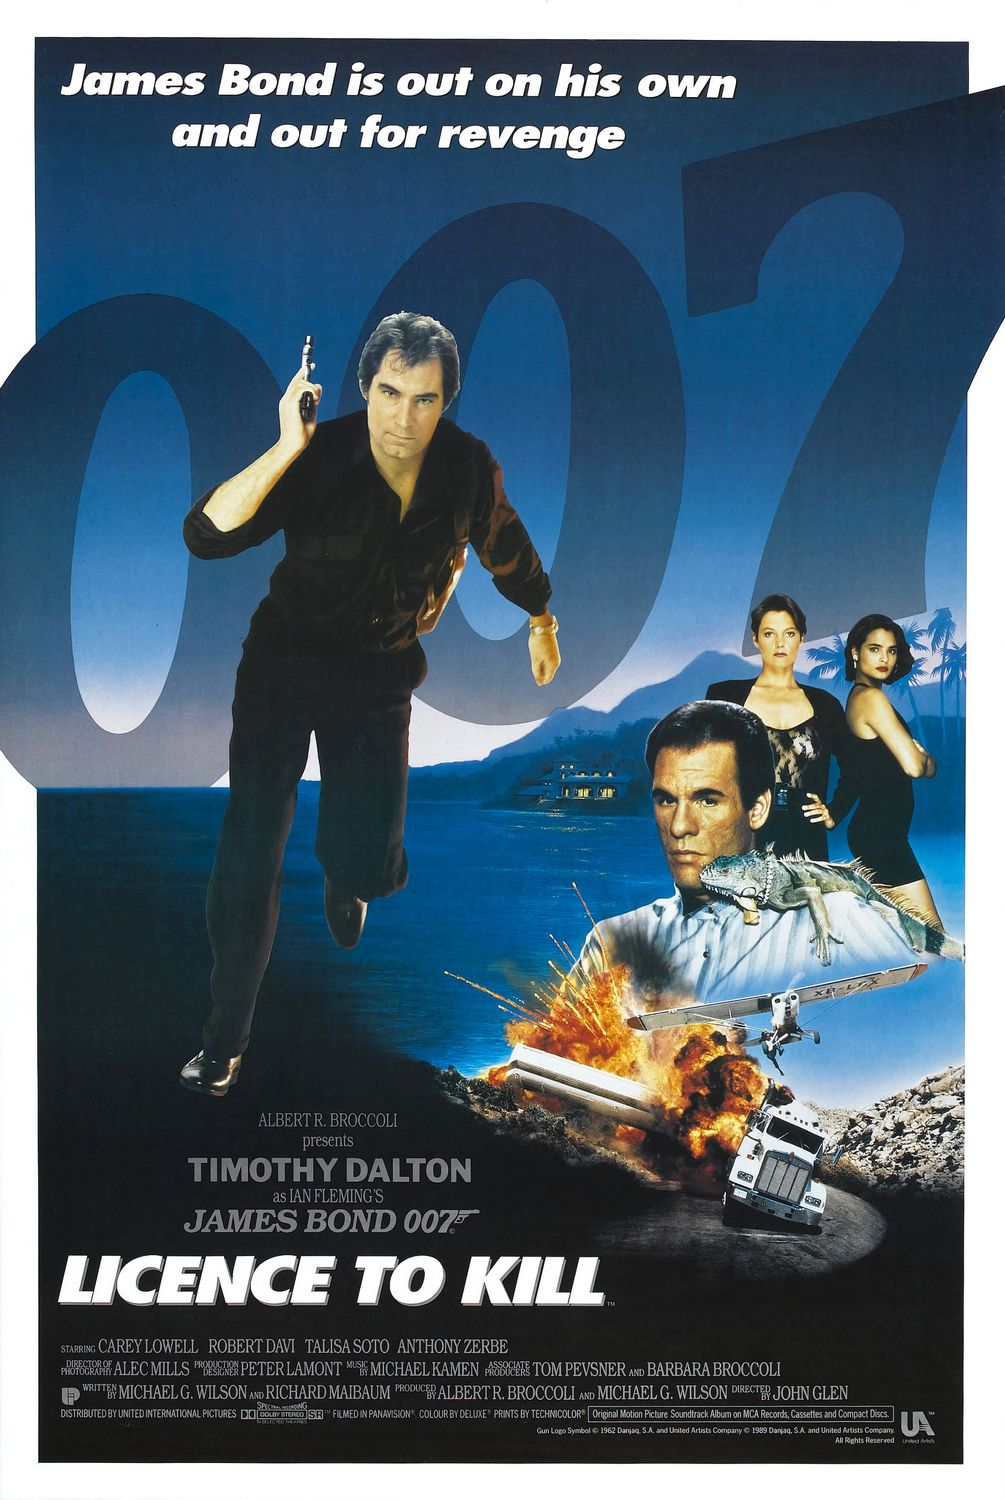 license to kill Licence to kill is probably the only james bond film that doesn't have all the elaborate sets and incredible action sequences, other than the explosive ending.